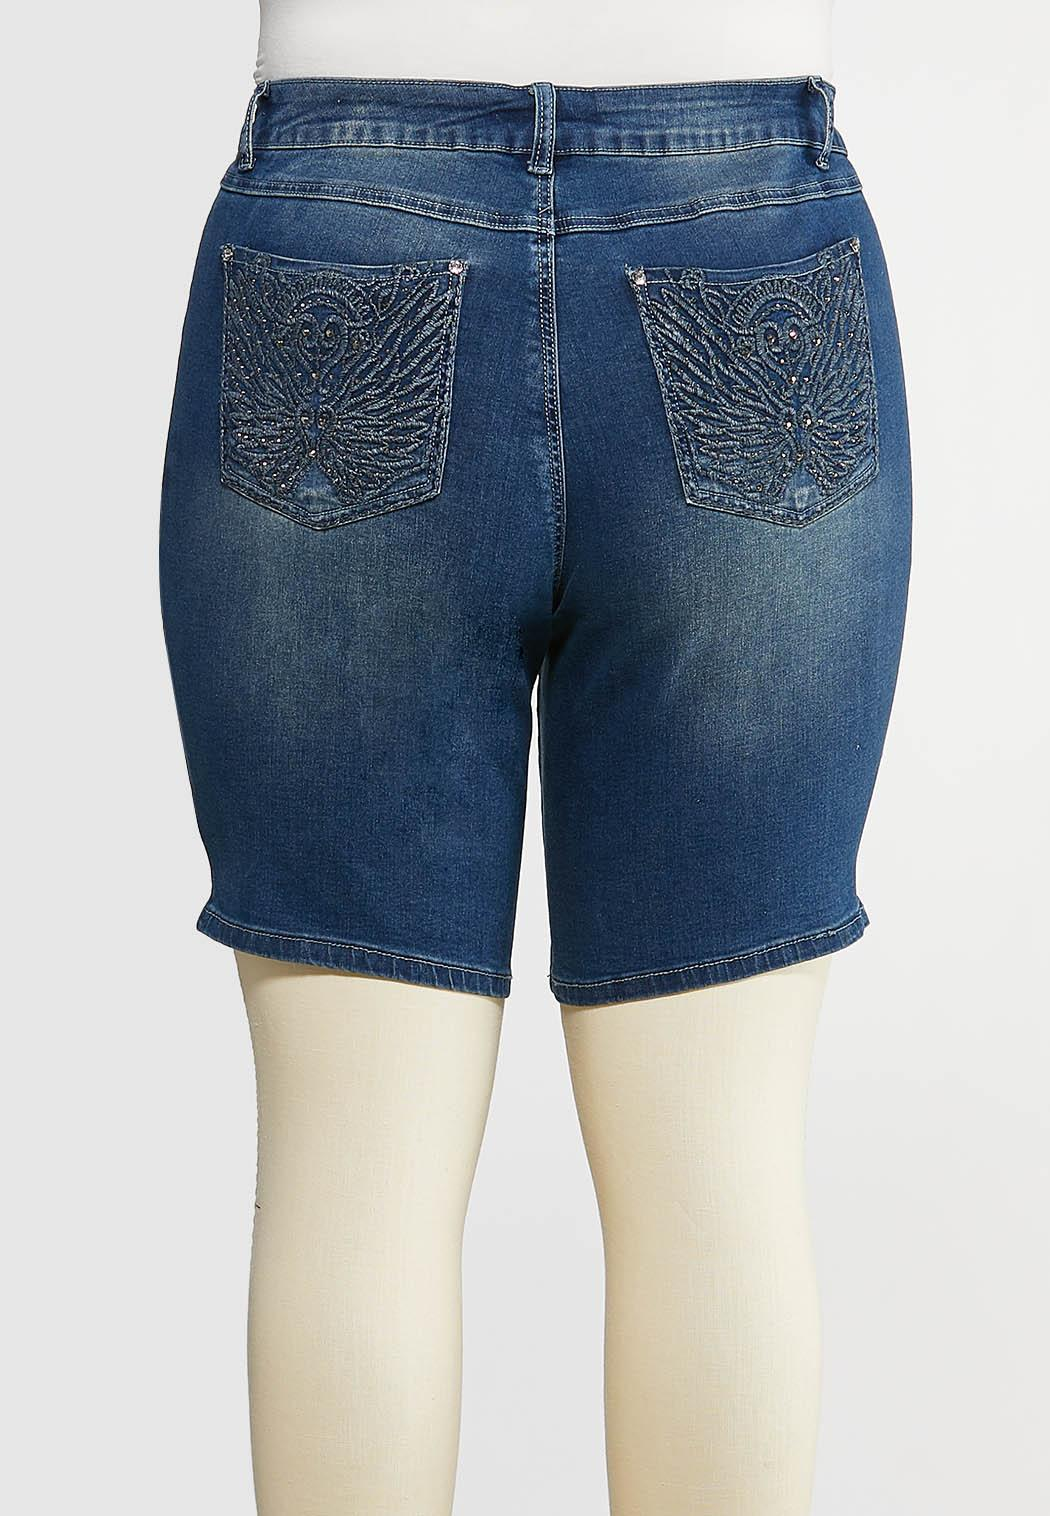 Plus Size Curvy Embellished Denim Shorts